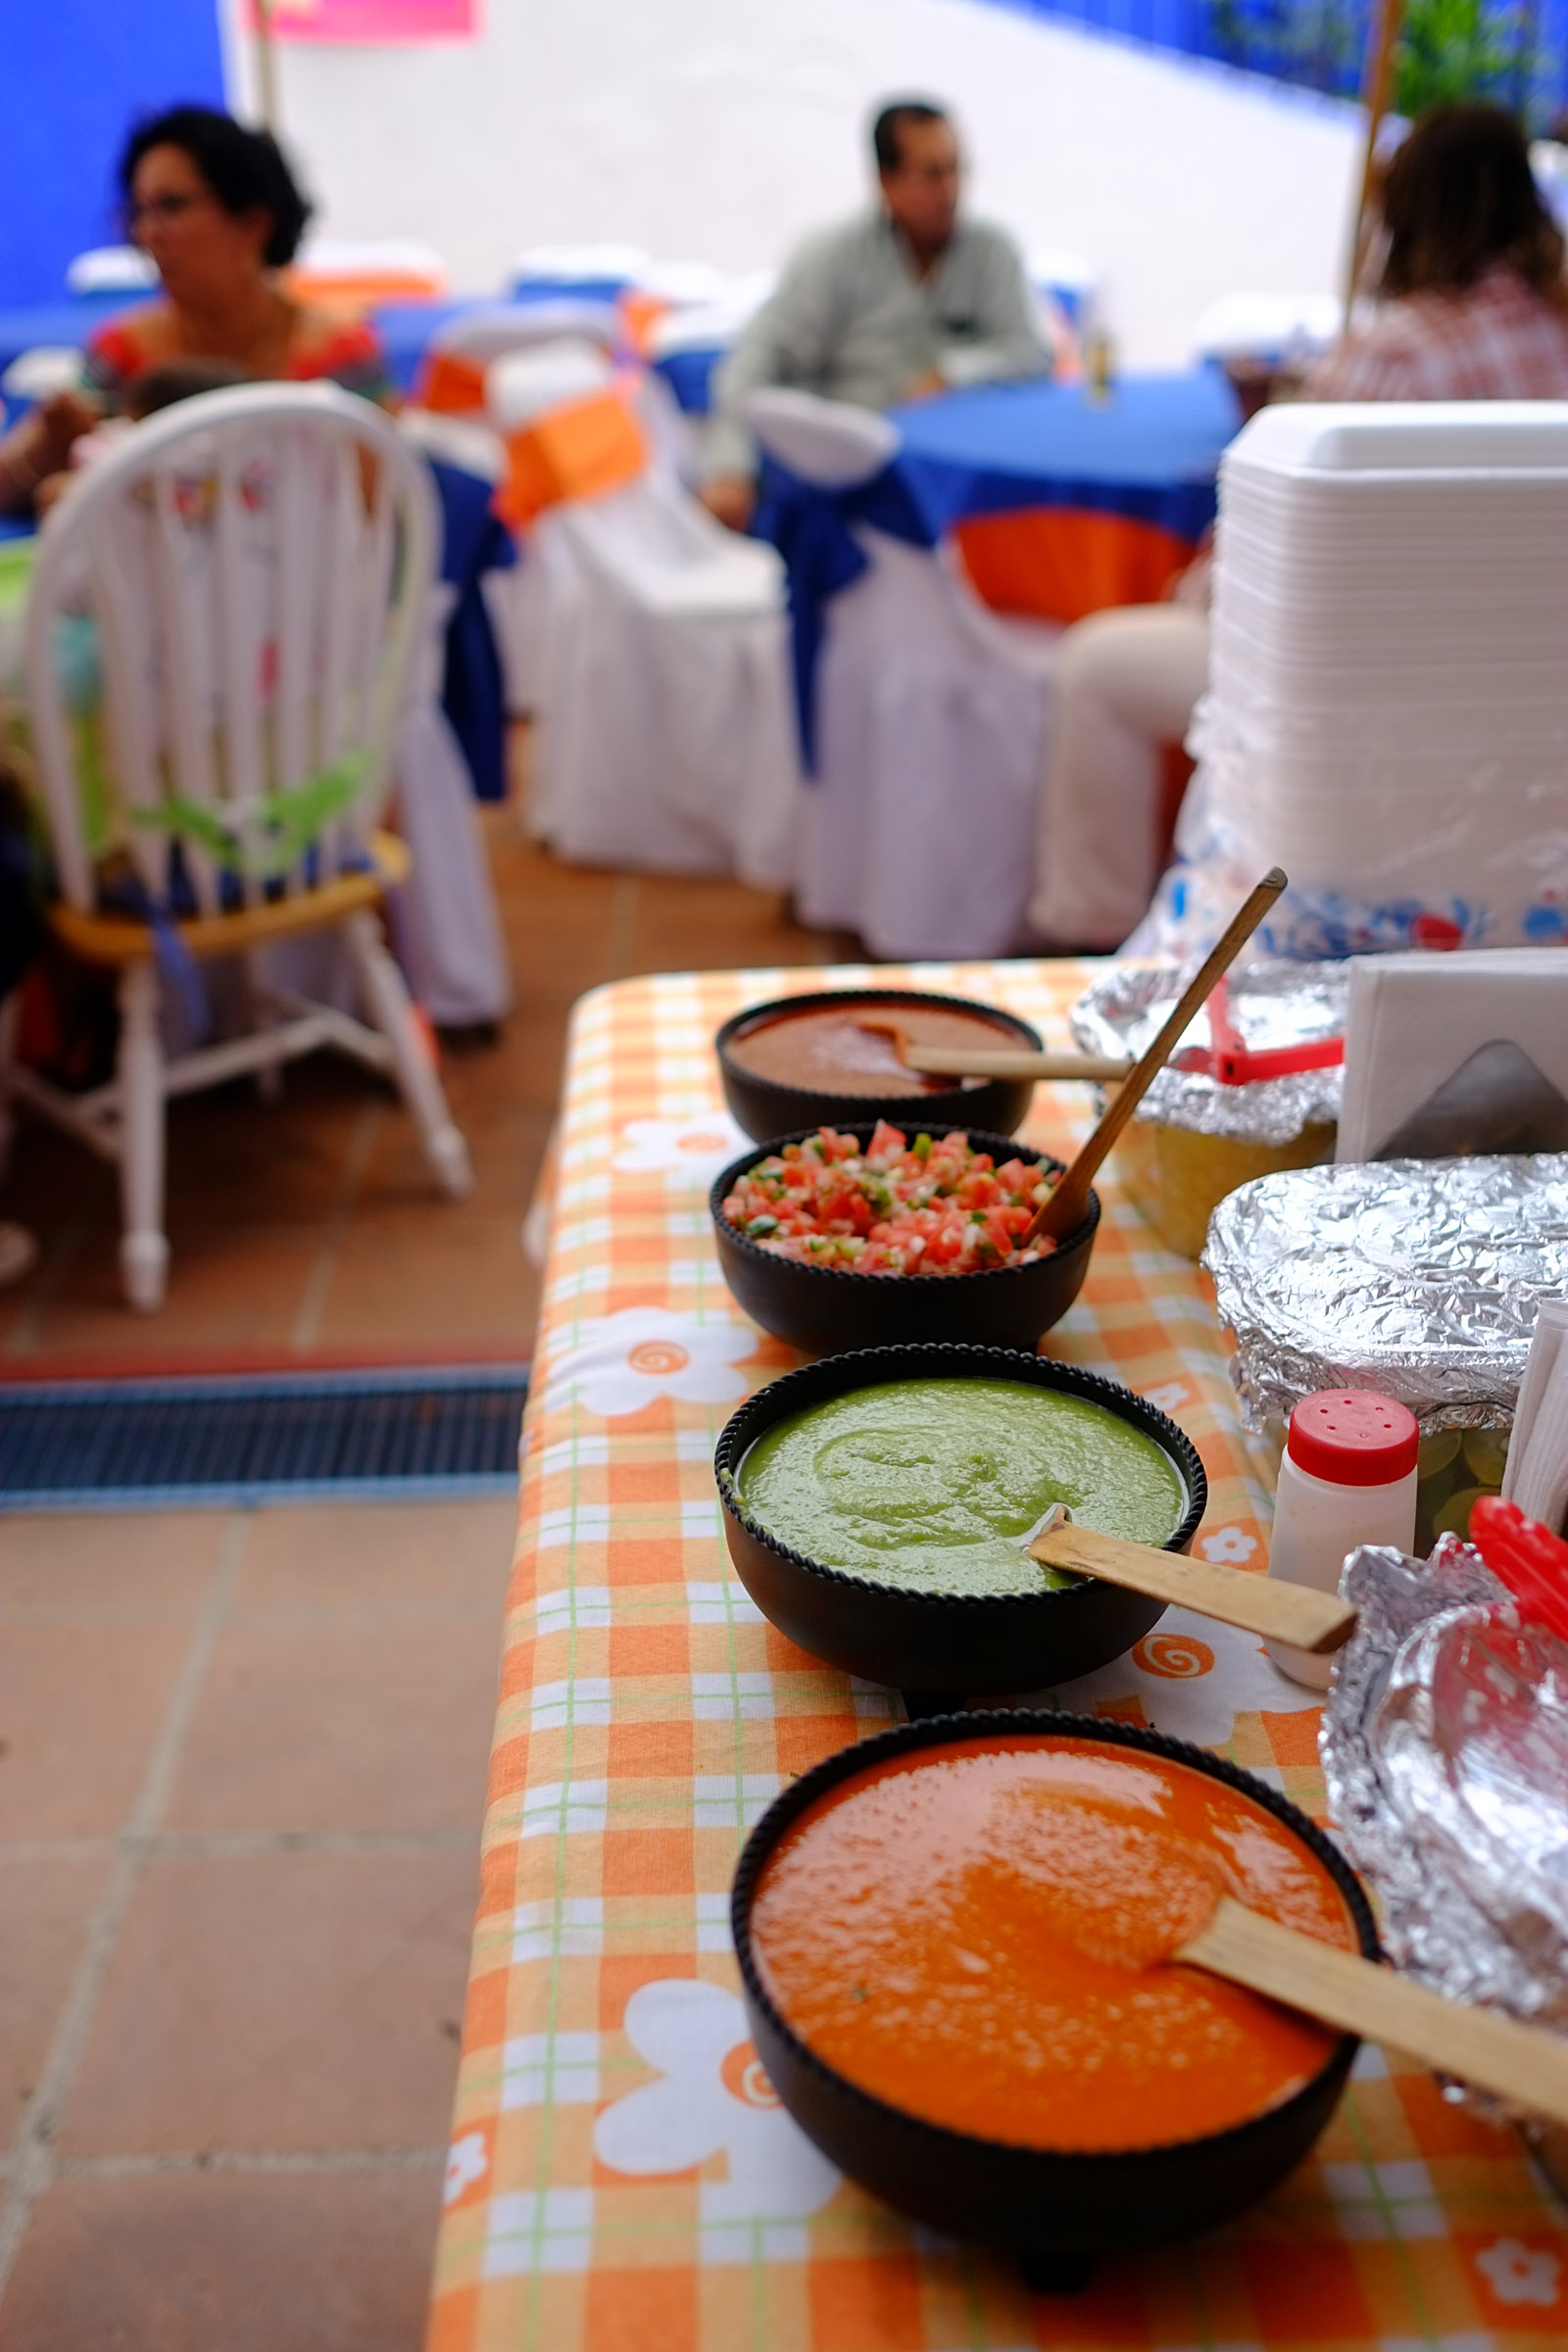 A Mexican birthday party